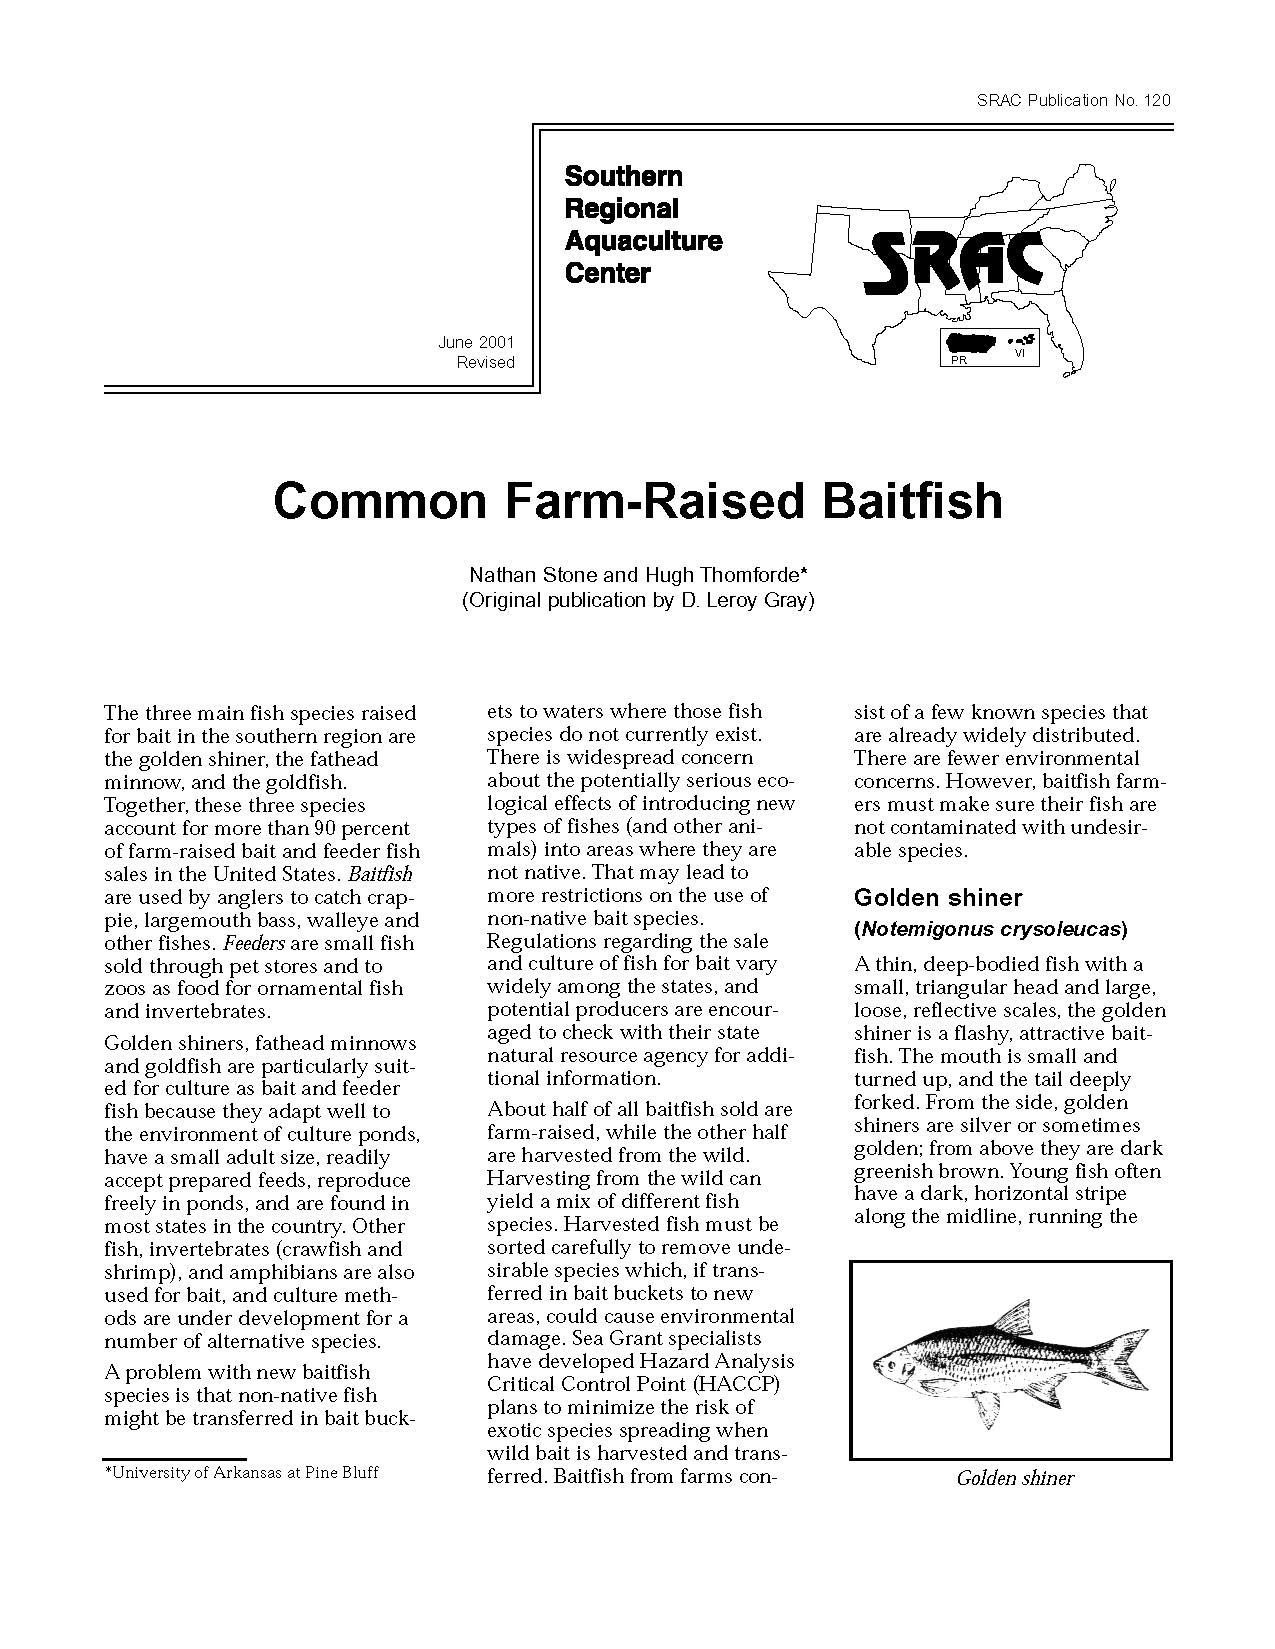 Common Farm-Raised Baitfish